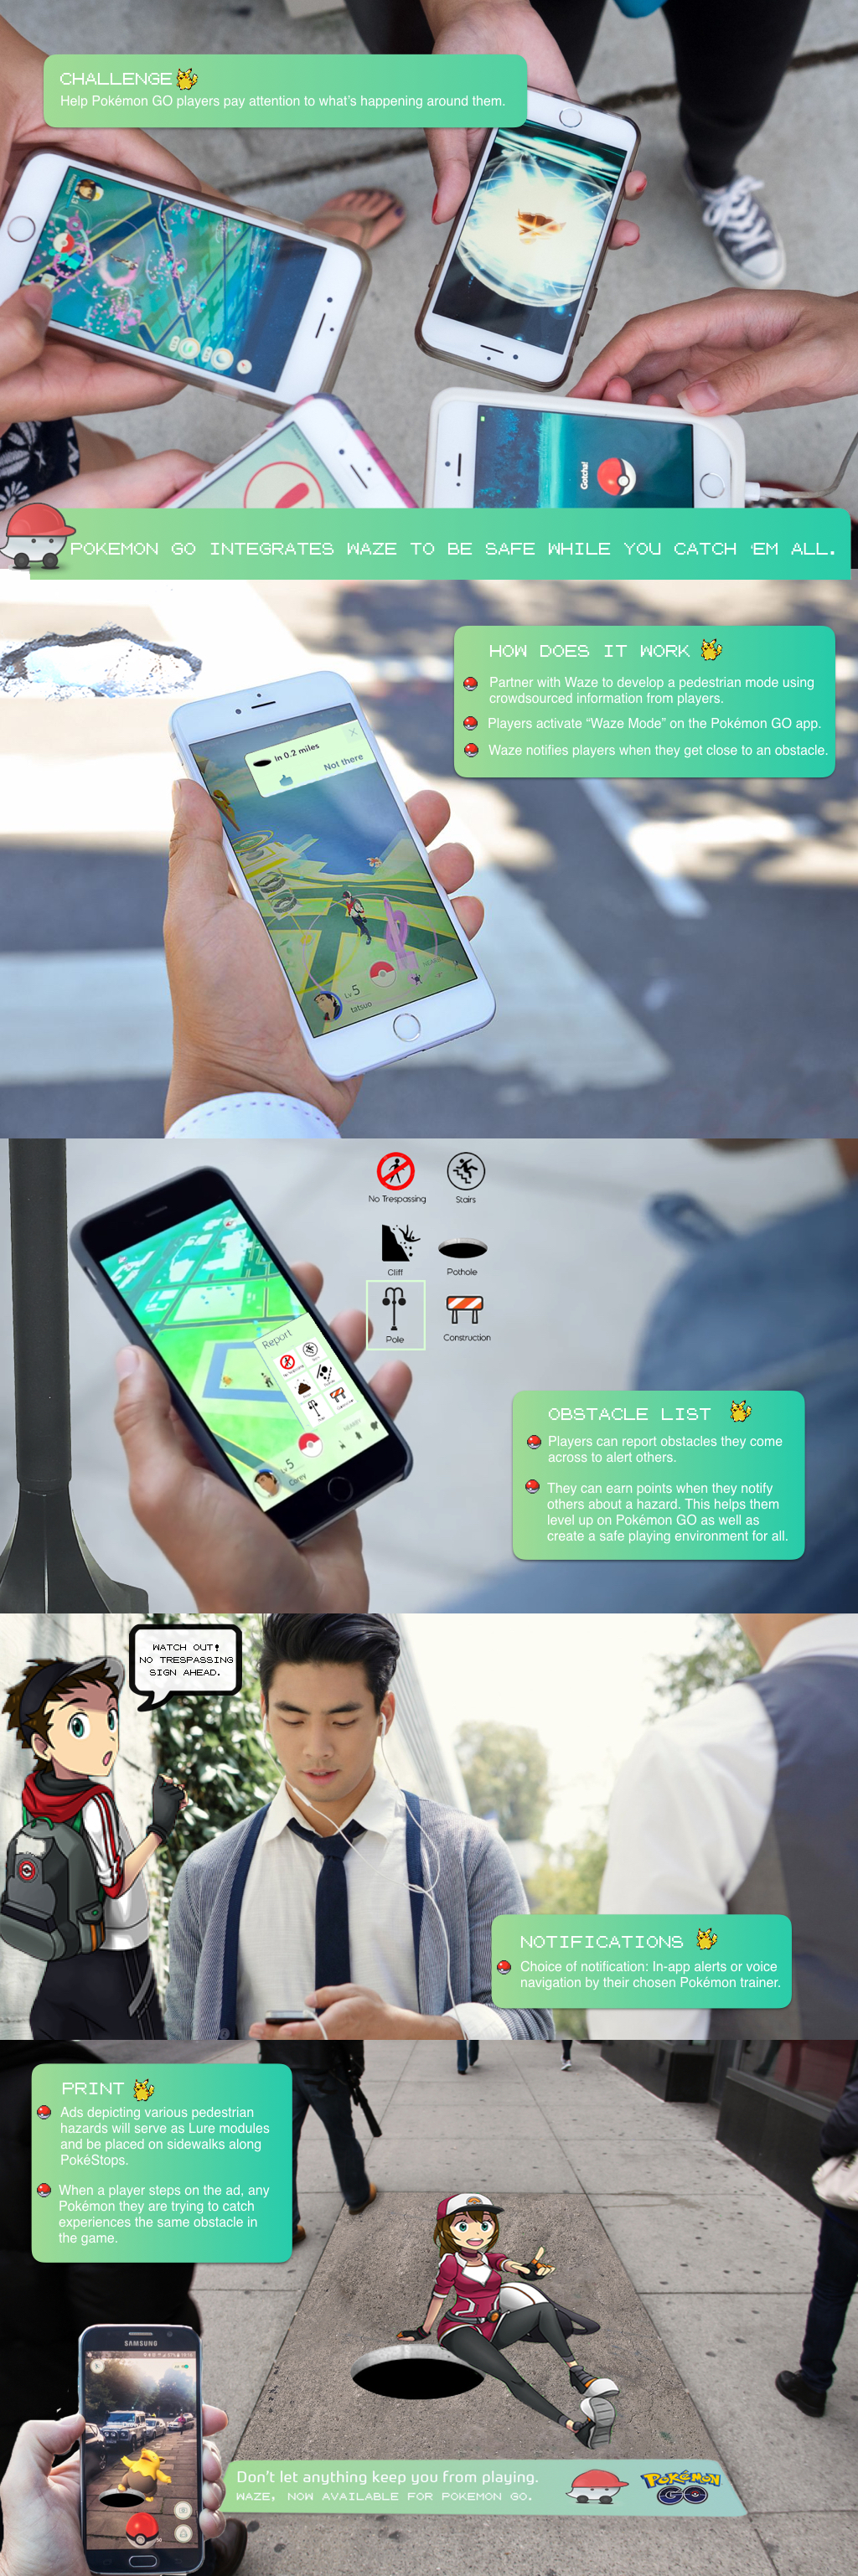 Pokemon GO Print Ad - Pokemon GO integrates Waze to be safe while you Catch 'em all